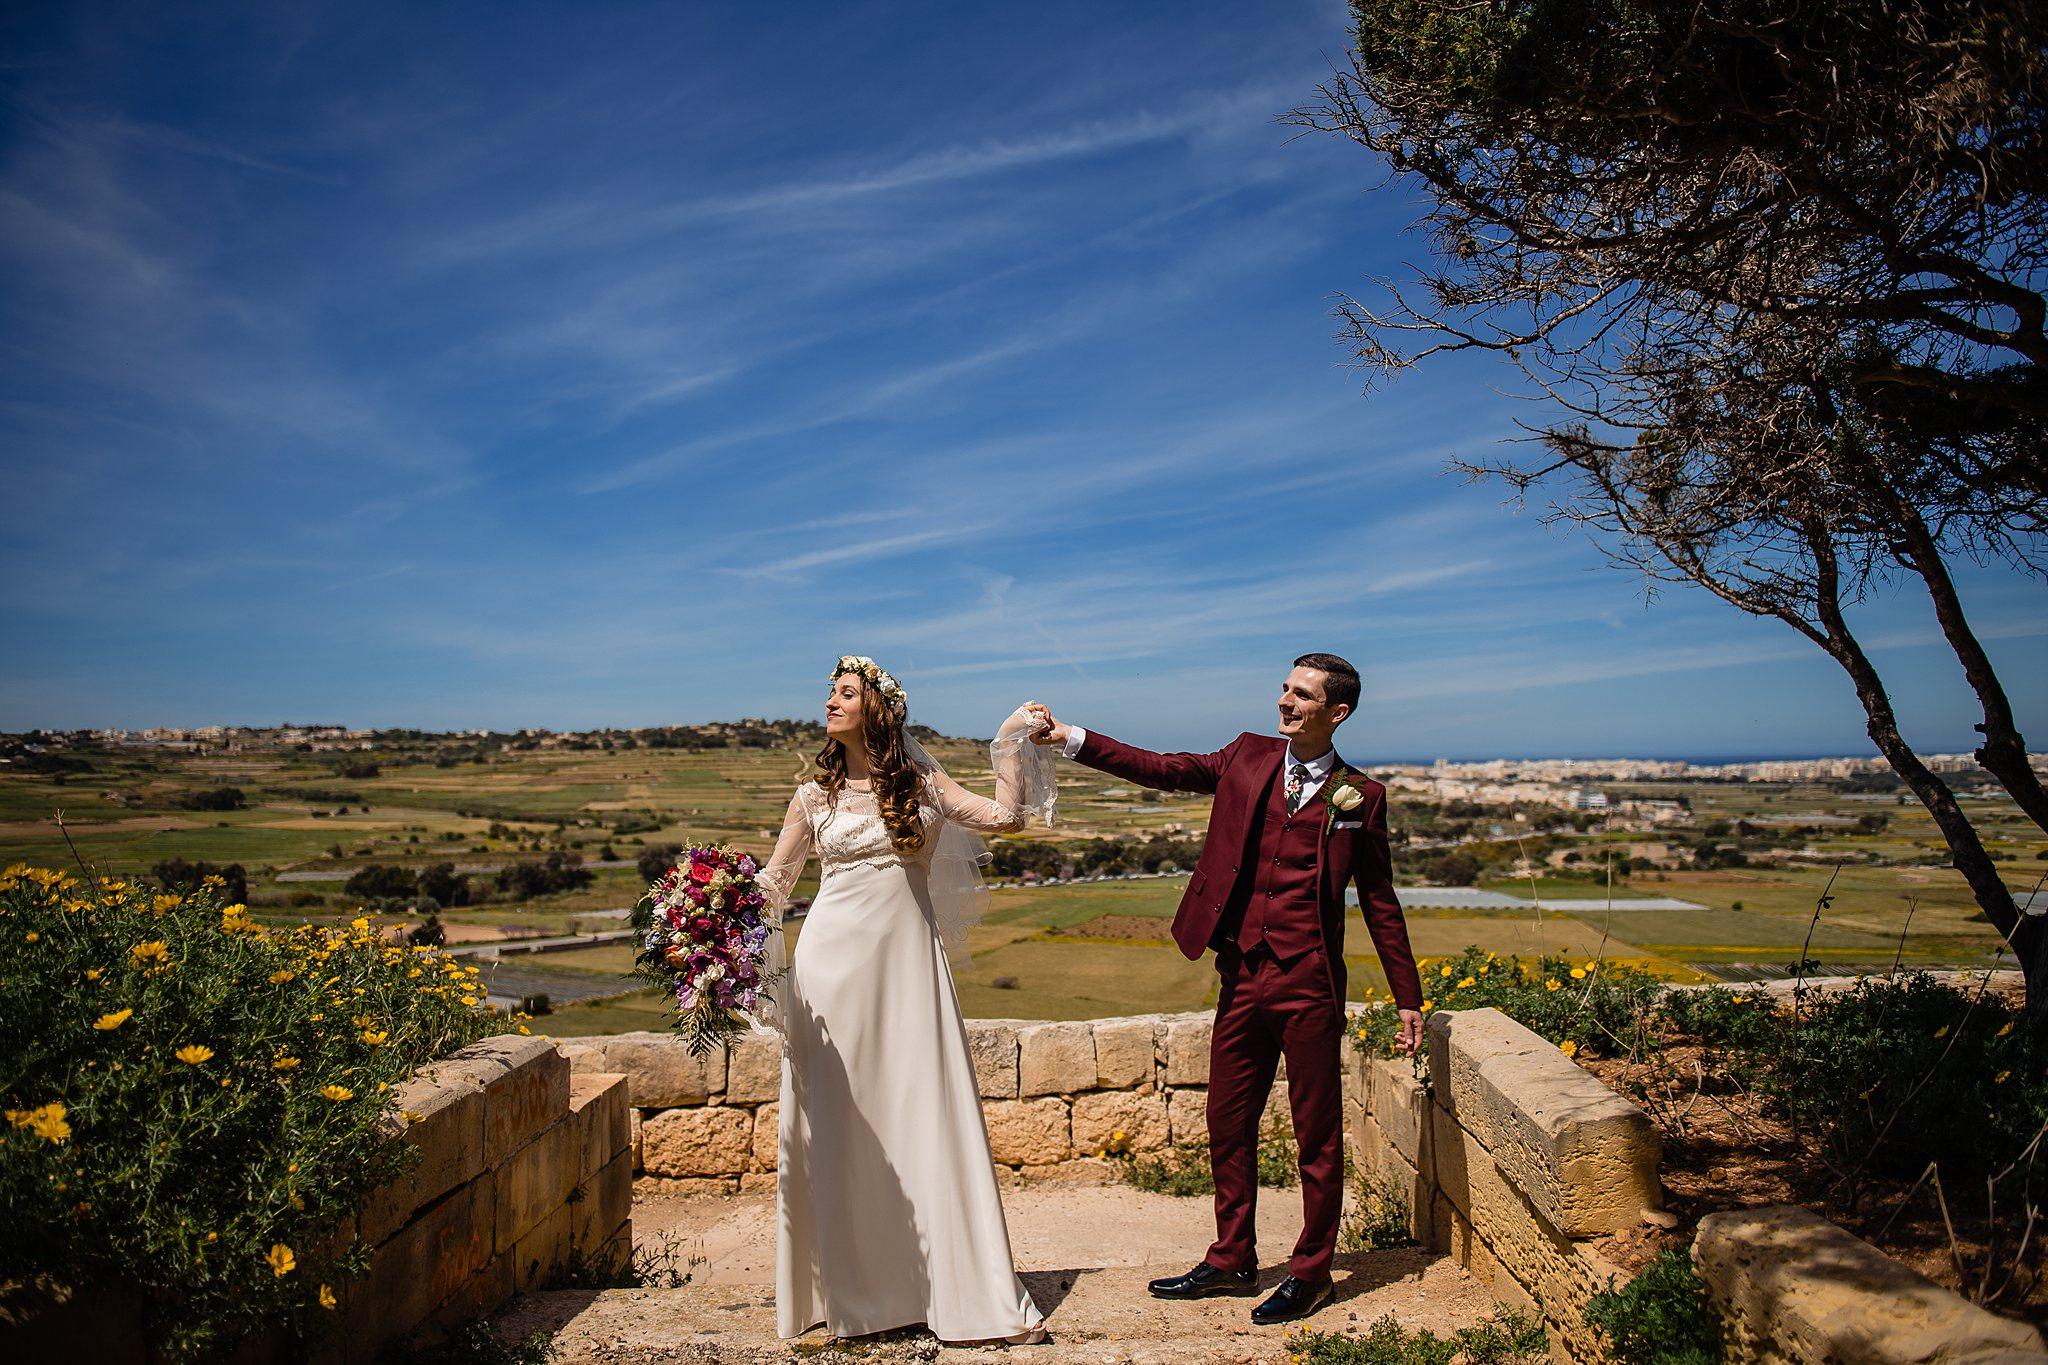 Bettina & Blaine | Villa Mdina | Wedding Photography Malta | Shane P. Watts Photography